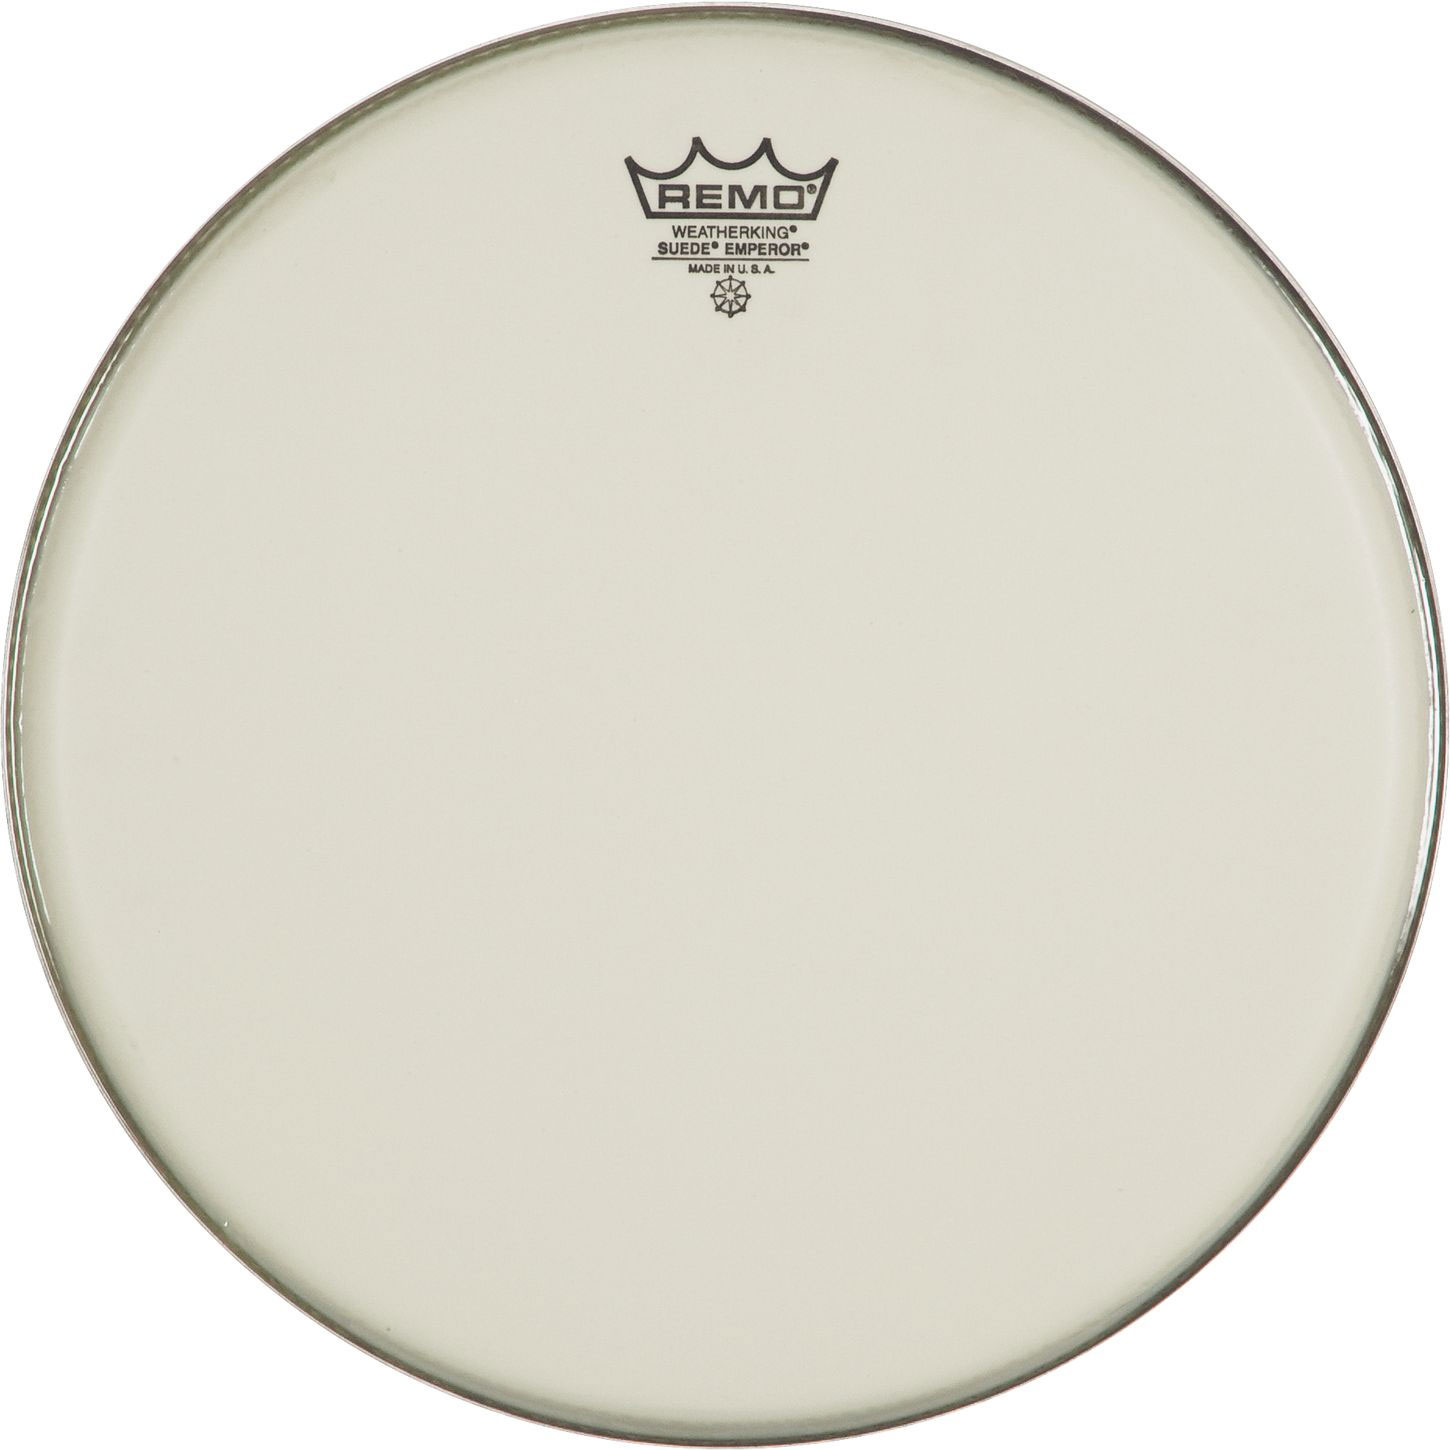 "Remo 6"" Emperor Suede Drum Head"